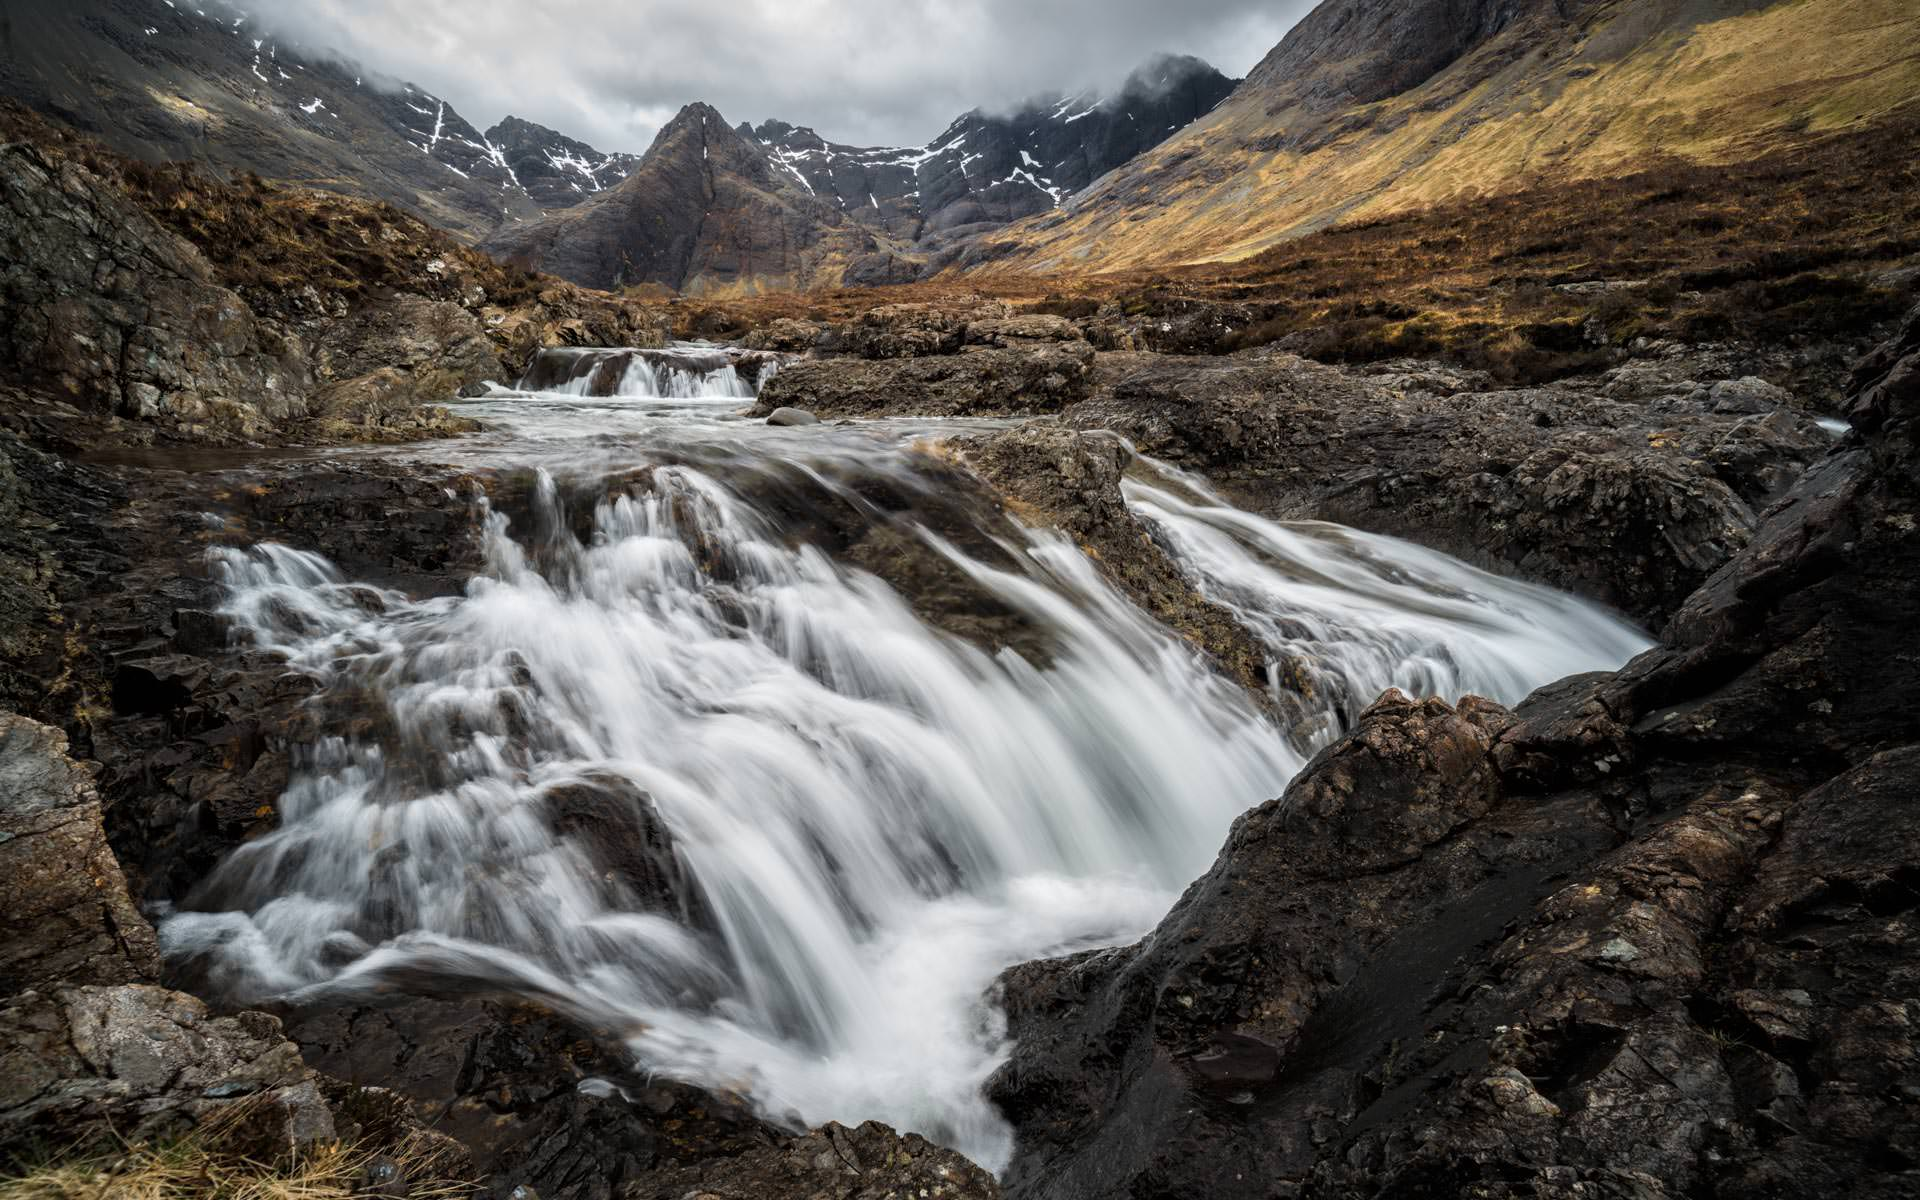 Moody Sky at the Fairy Pools - Landscape Photo